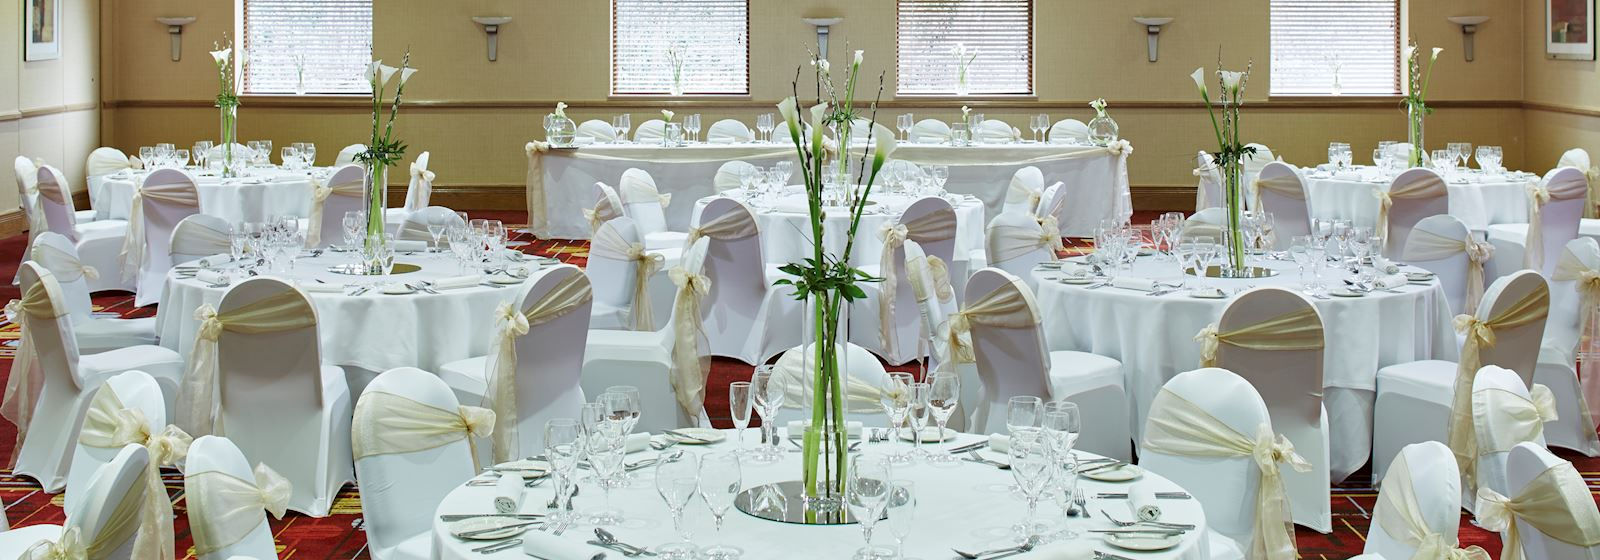 wedding party function rooms swindon